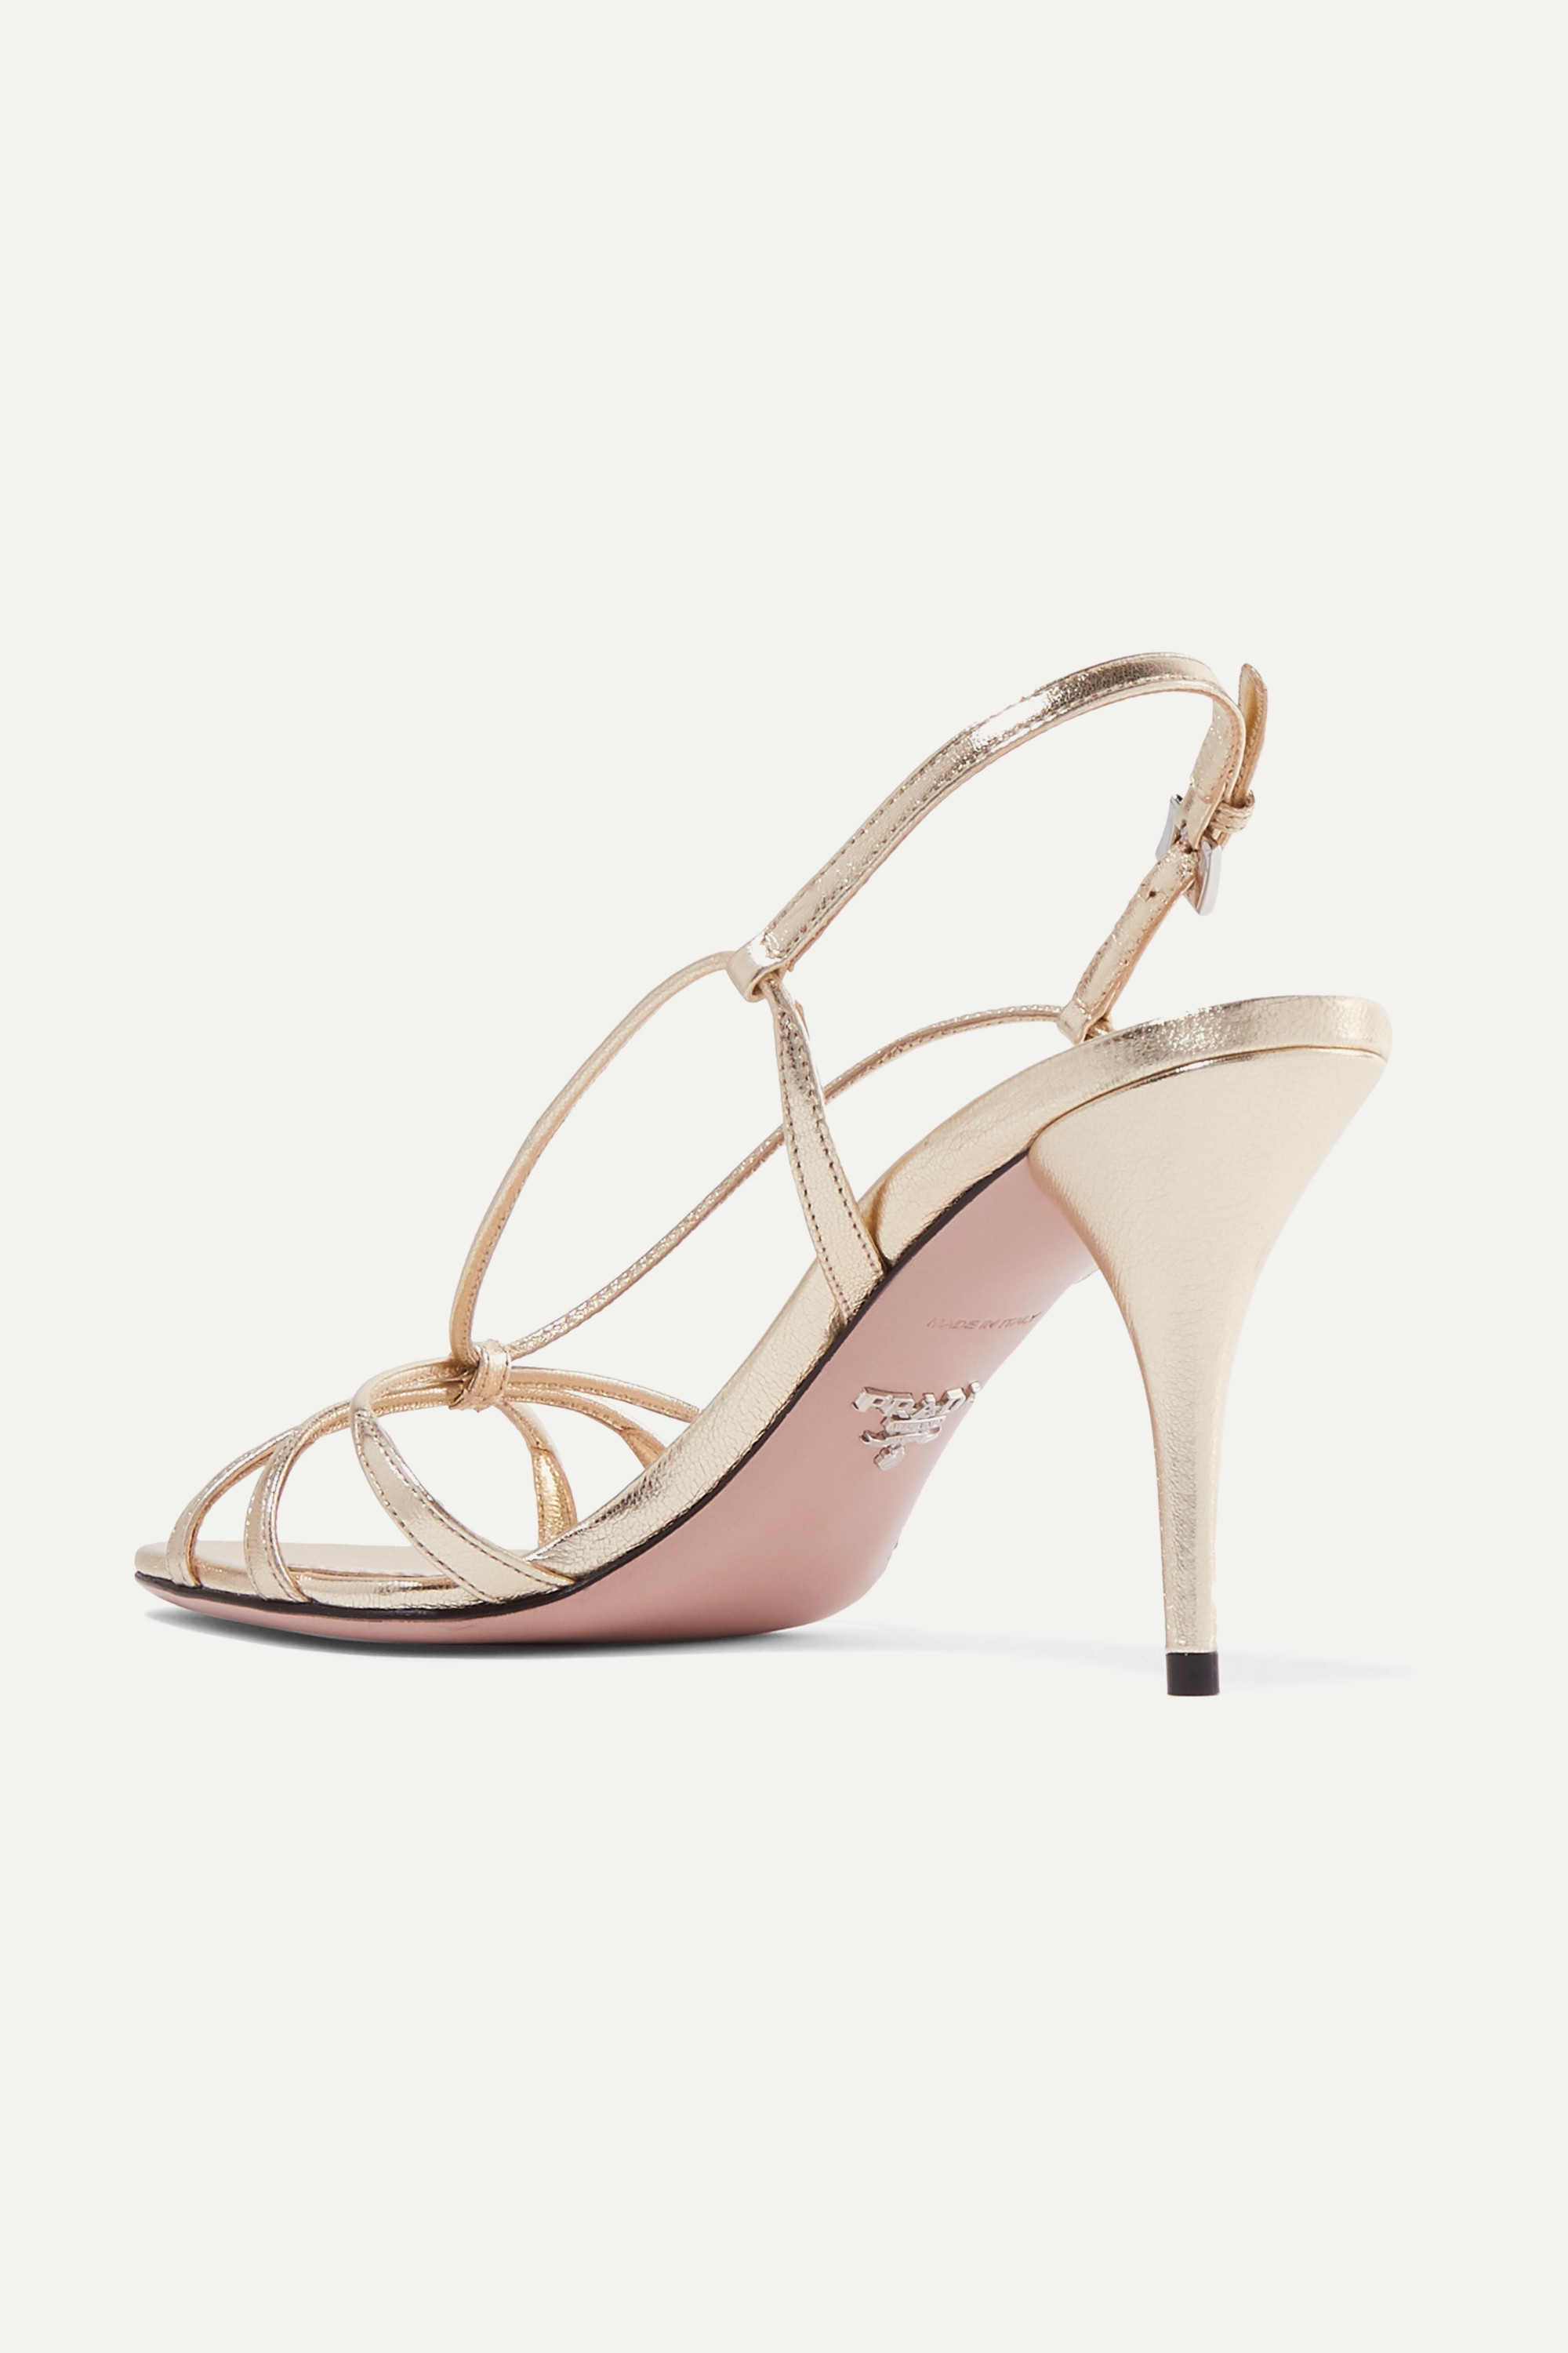 Prada 85 metallic leather sandals